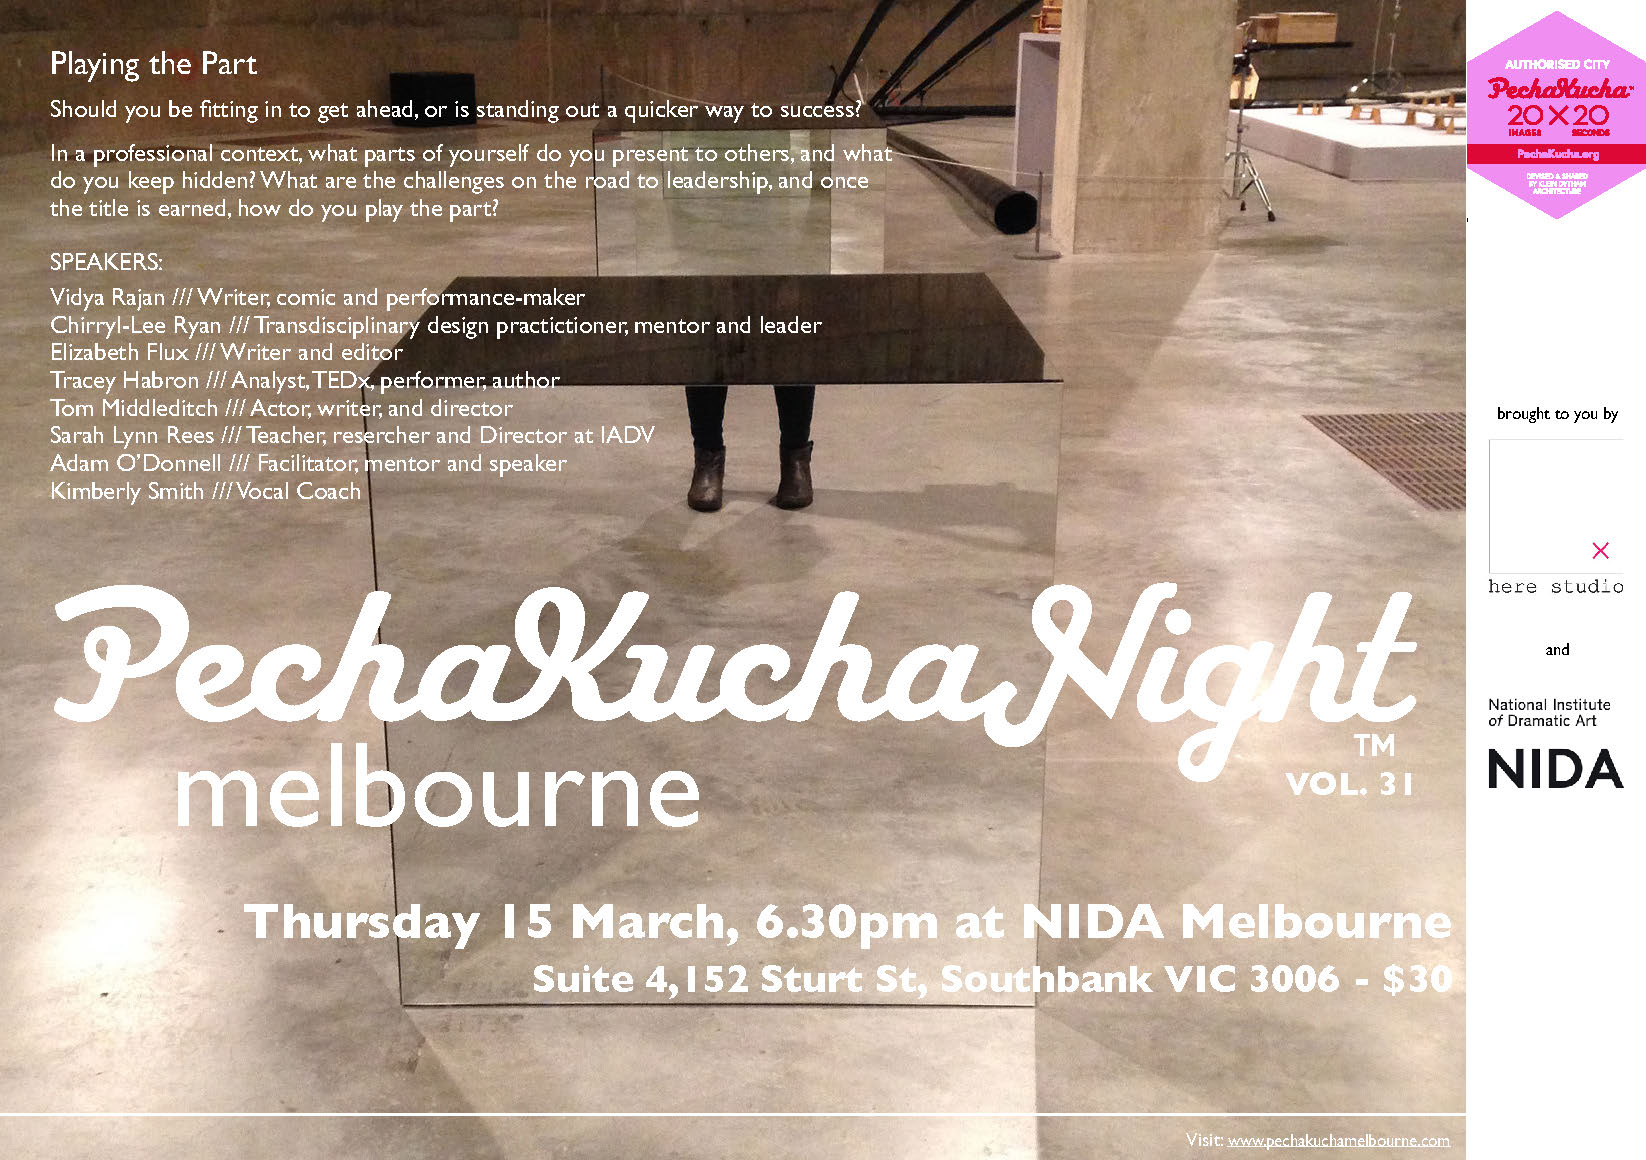 Pecha Kucha NIDA Flyer with speakers.jpg